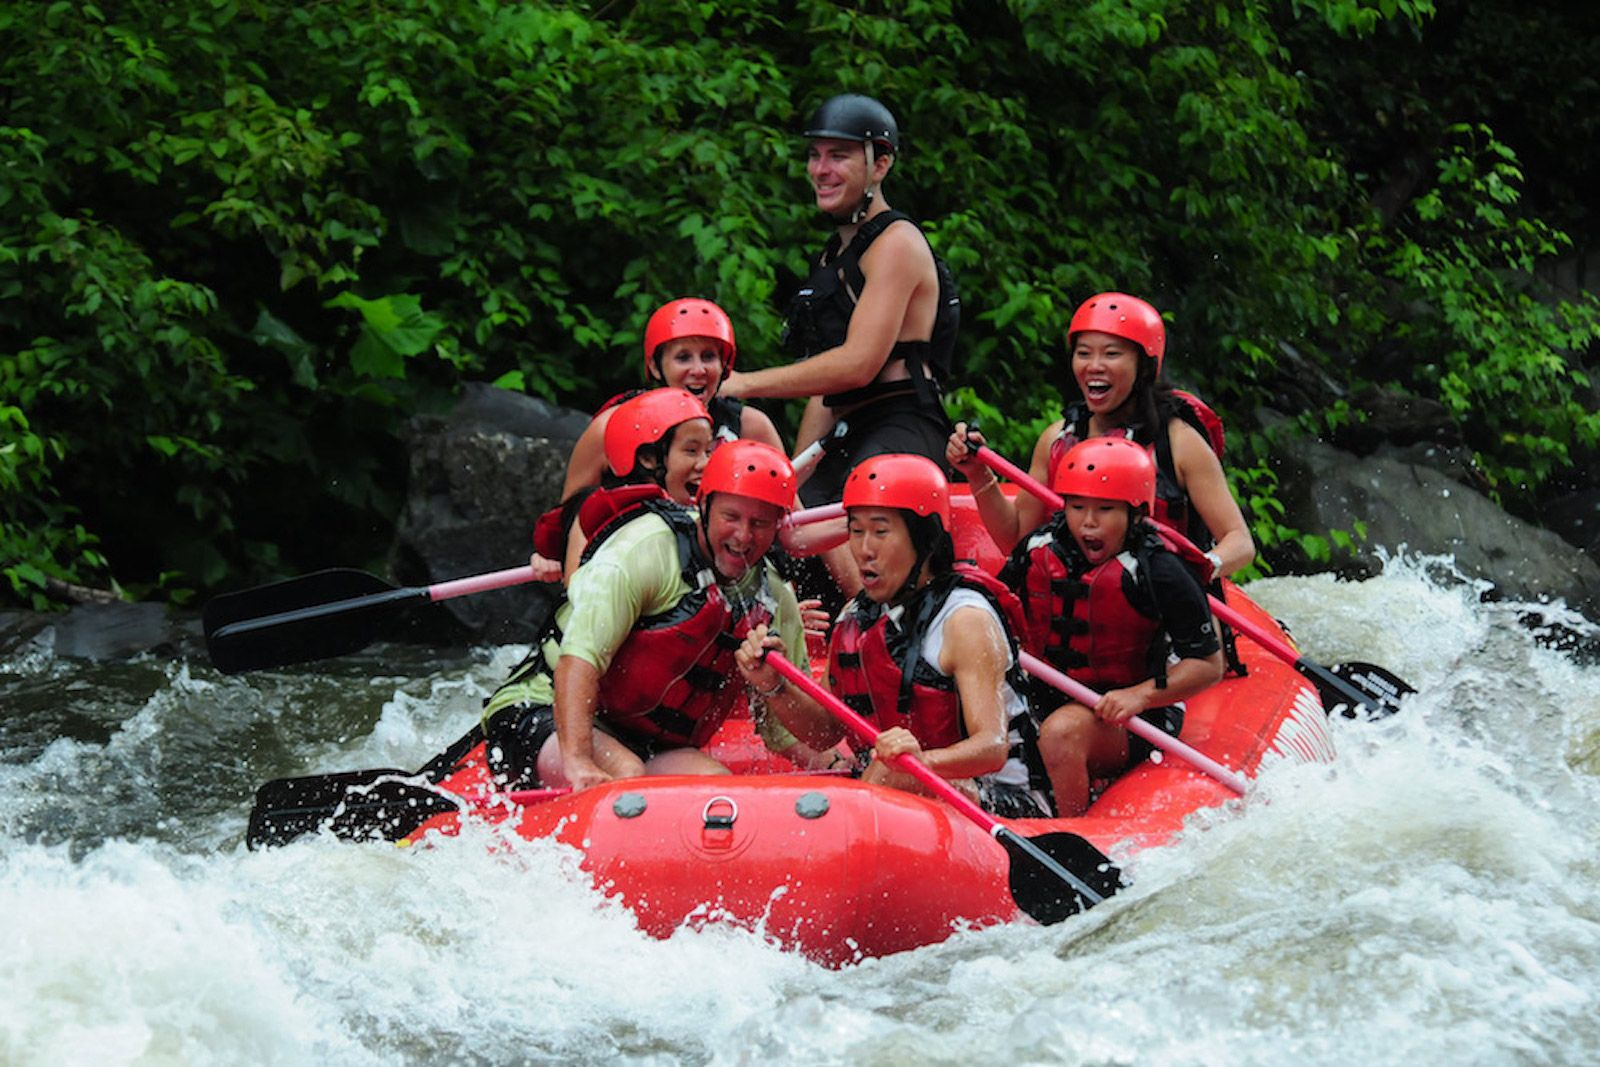 4 Reasons to Book Our Adventure Package for Rafting in the Smoky Mountains